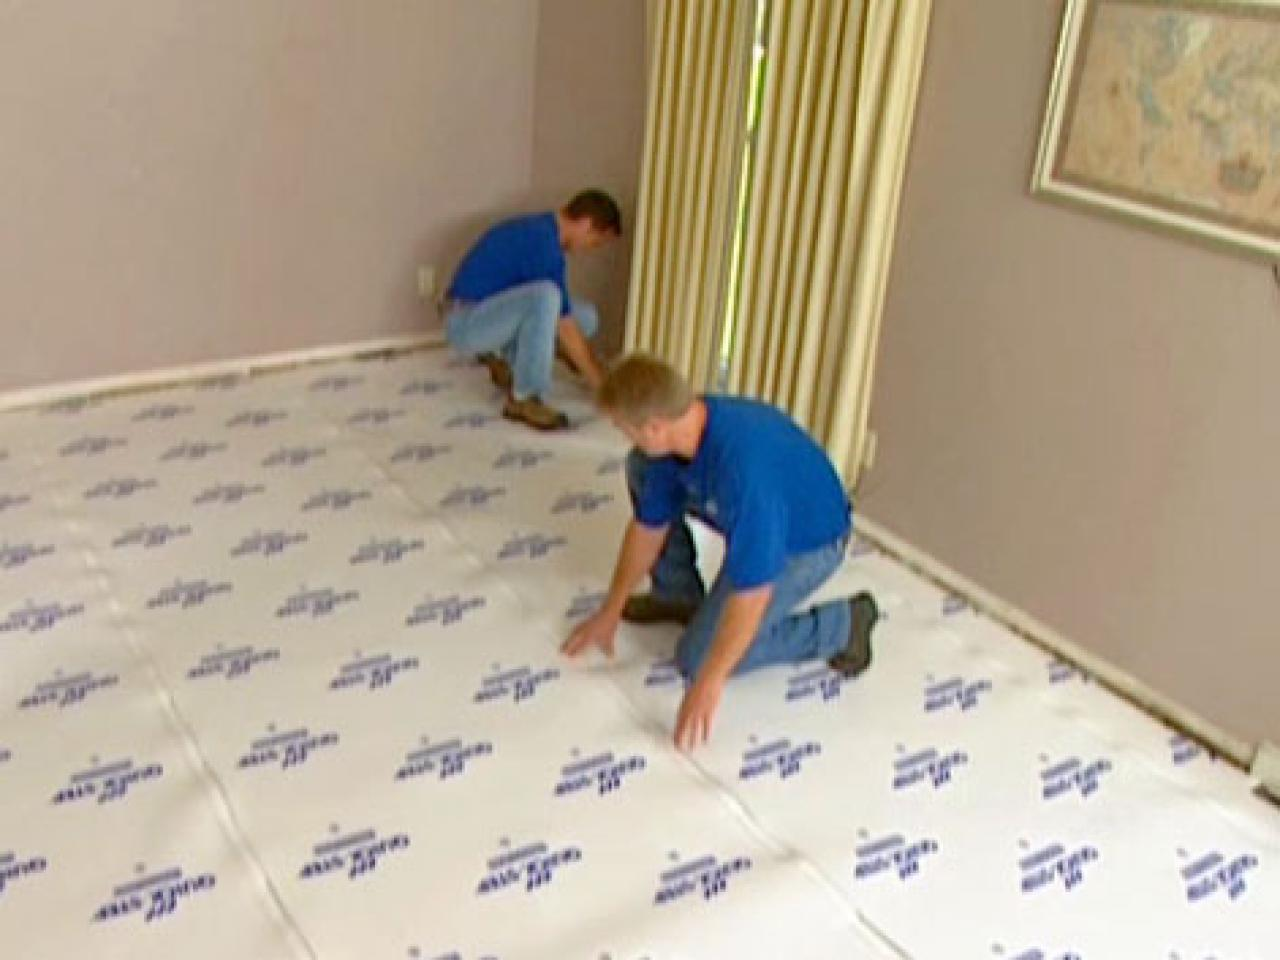 How To Install Underlayment And Laminate Flooring HGTV - What do i put under laminate flooring